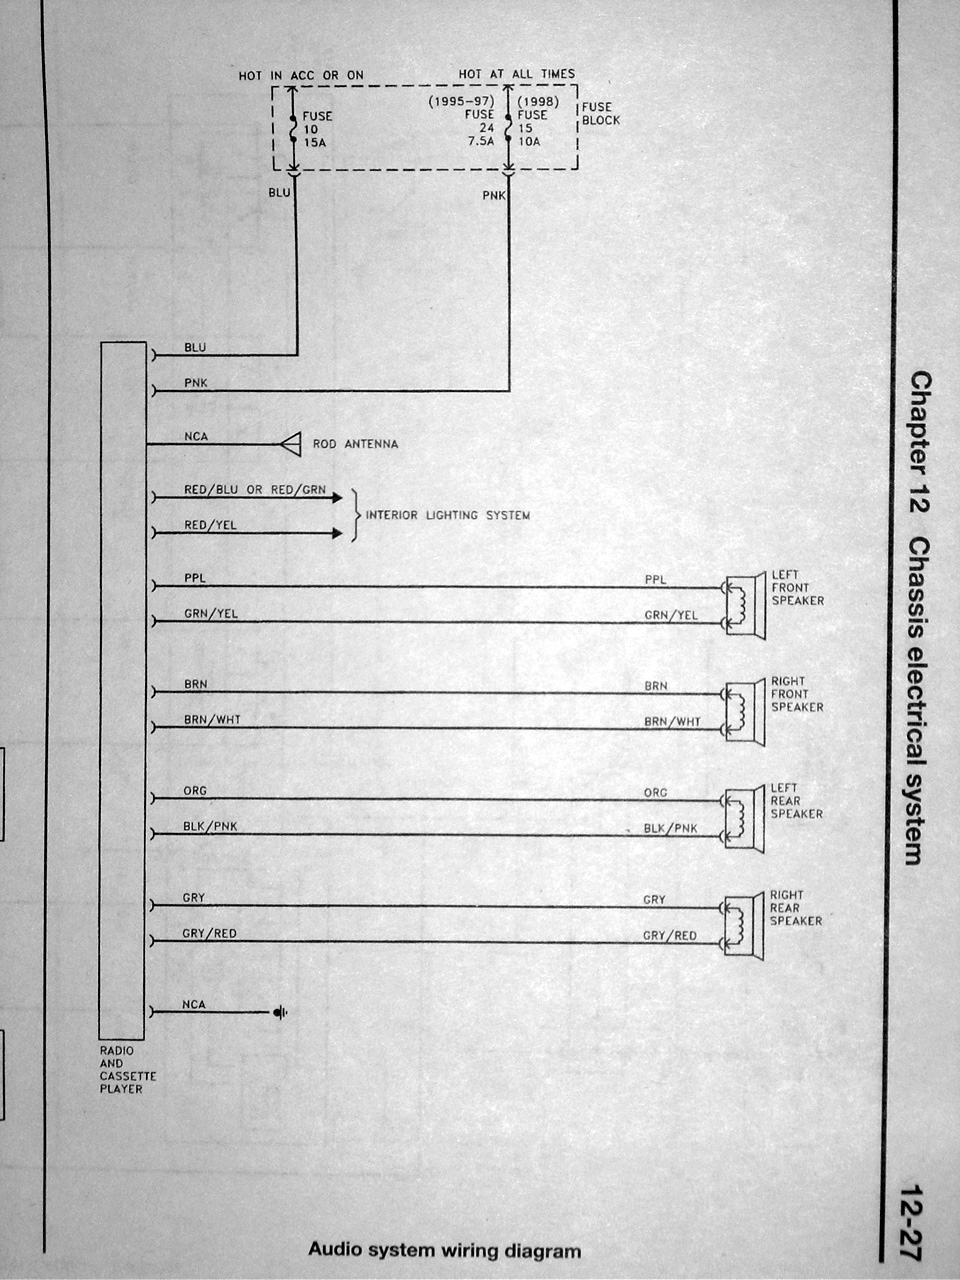 DSC01849 wiring diagram thread *useful info* nissan forum 1999 nissan frontier radio wiring diagram at creativeand.co